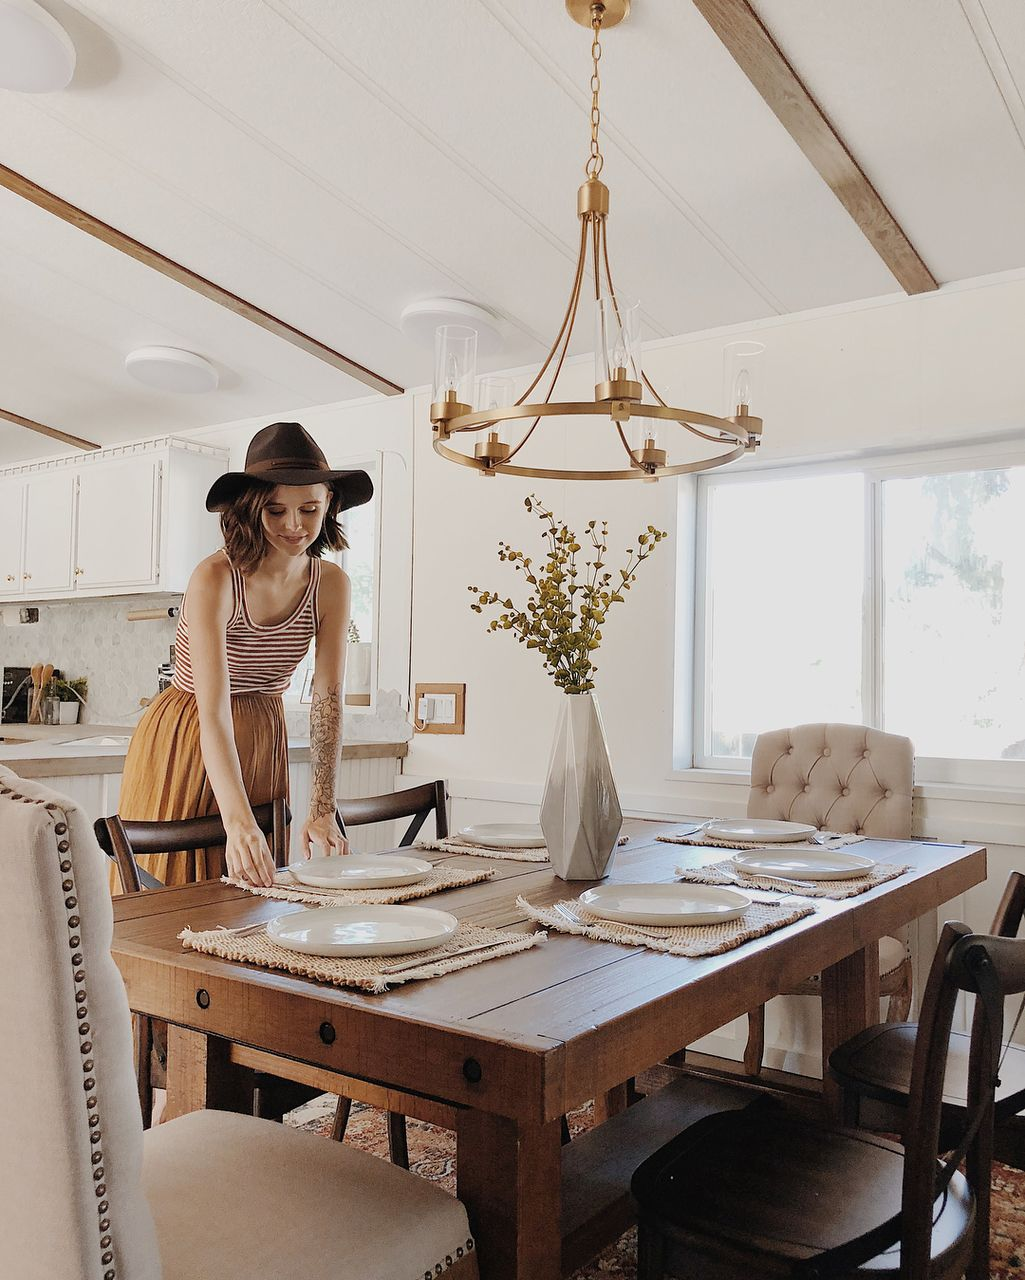 I Want This Exact Kitchen Goals With Images Interior